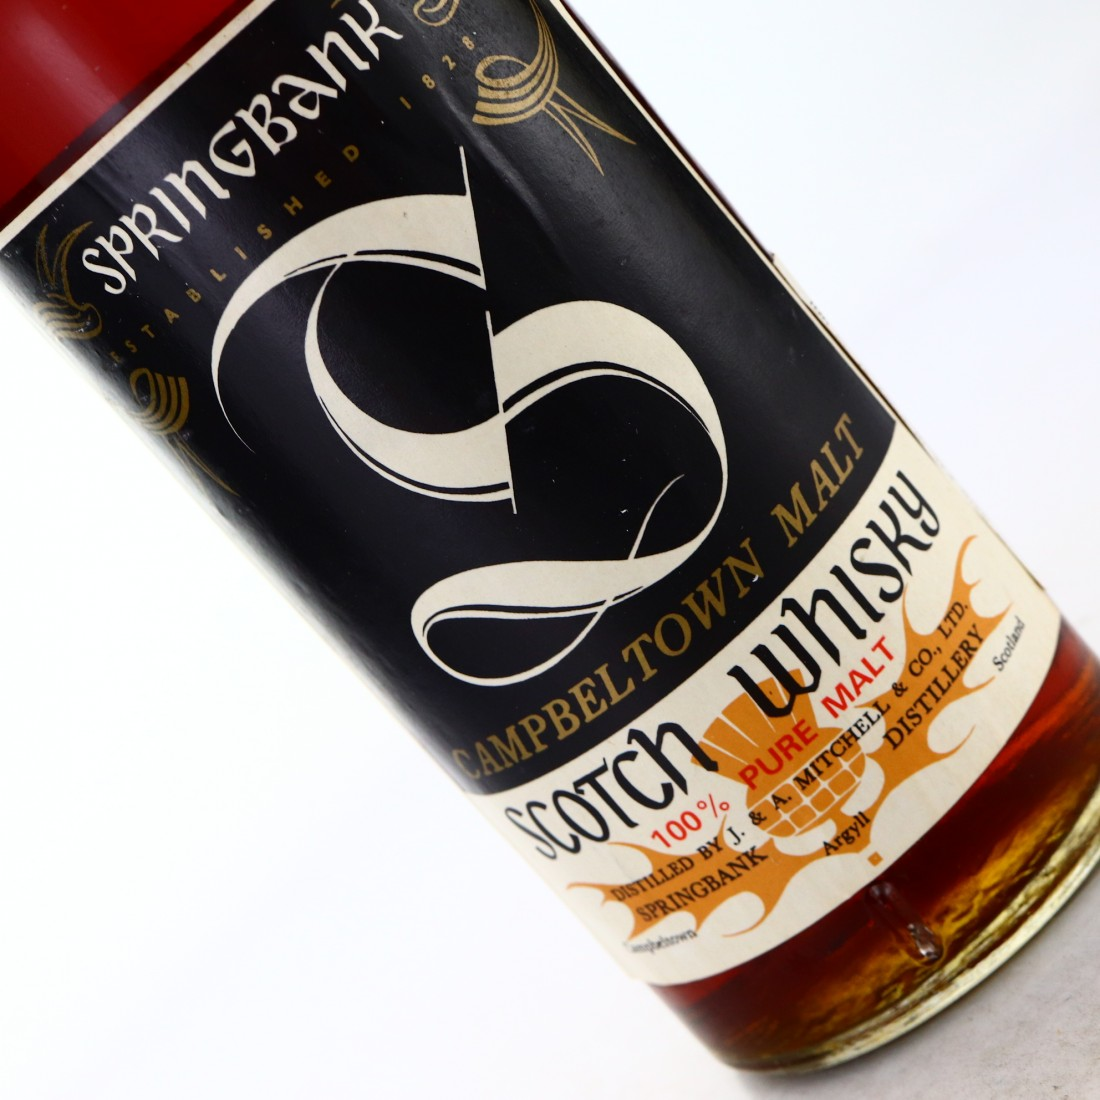 Springbank 10 Year Old Cask Strength Sherry Wood 1970s / A. Sutti Import